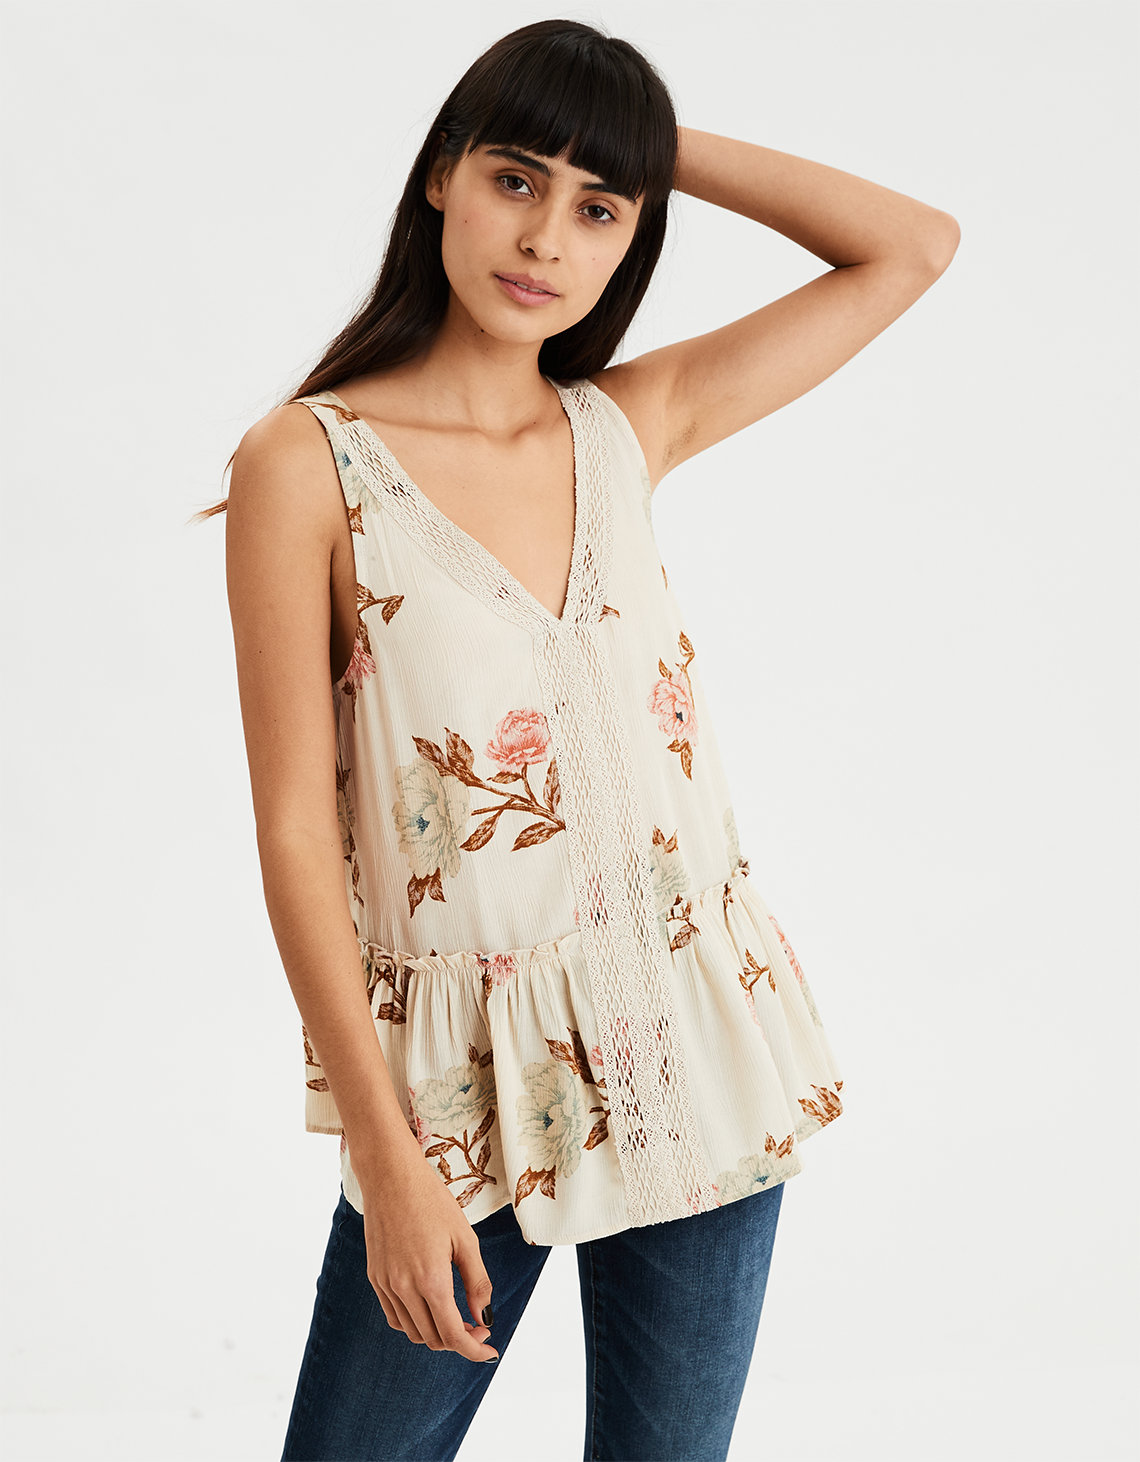 f69bc8e914a970 AE Floral Lace Inset Shell Top. Placeholder image. Product Image